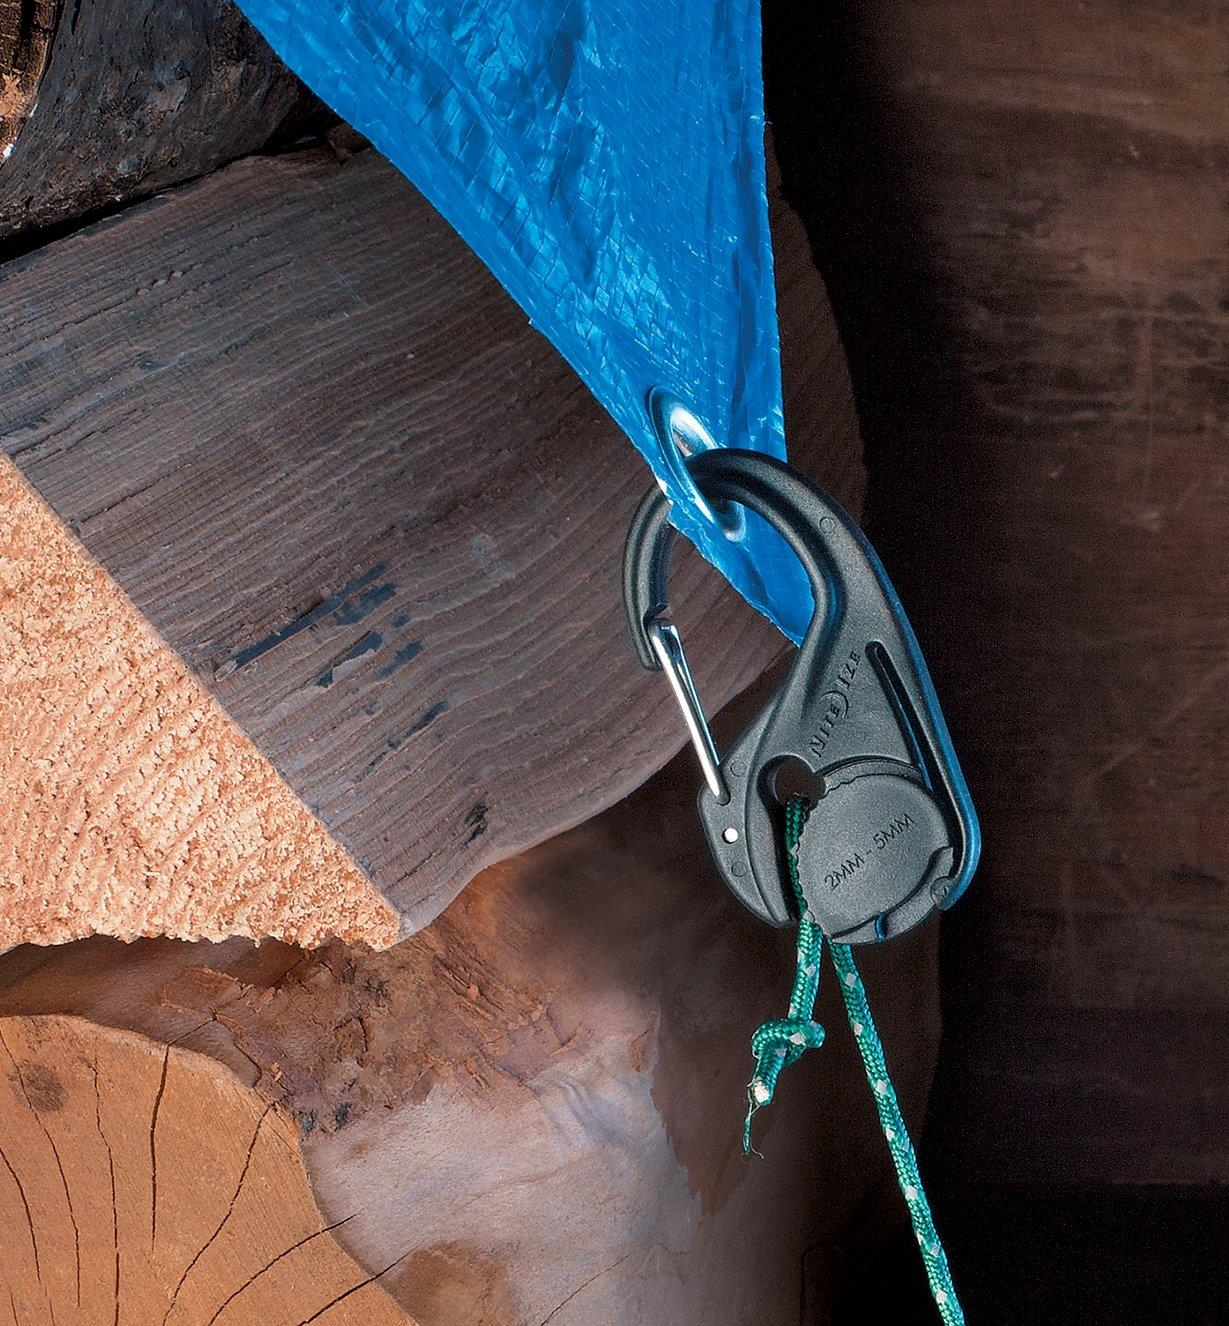 Nylon CamJam Cord Tightener holding a tarp over a woodpile